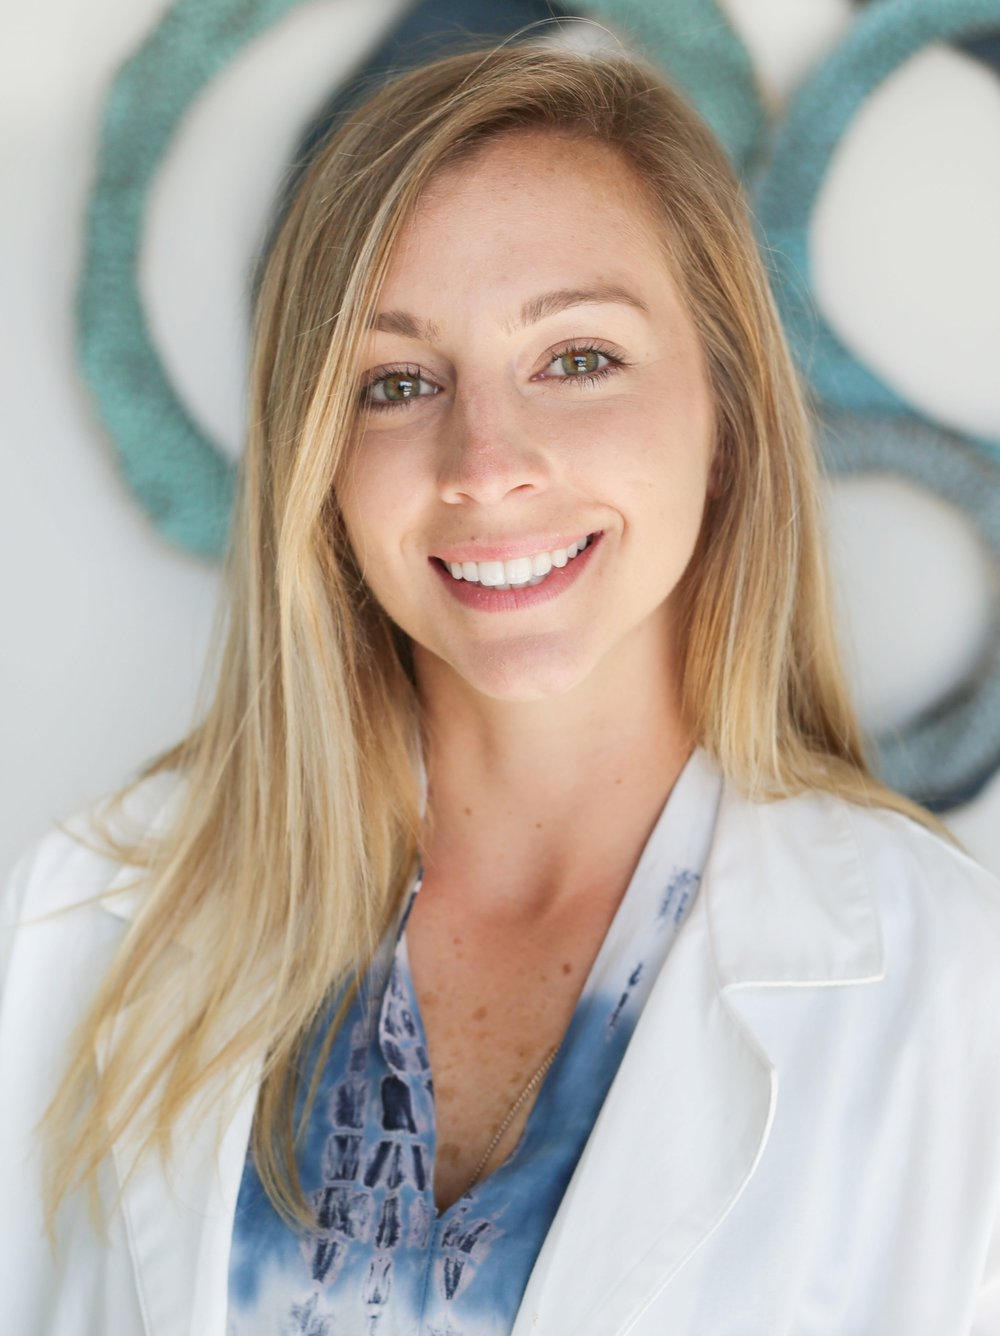 Allea Francis, PT, DPT   Allea found her passion for women's health and pelvic floor therapy on a clinical rotation in Kansas City, Missouri. Afterwards, she began to further her experience and knowledge by developing a protocol for female stroke victims with urinary incontinence.